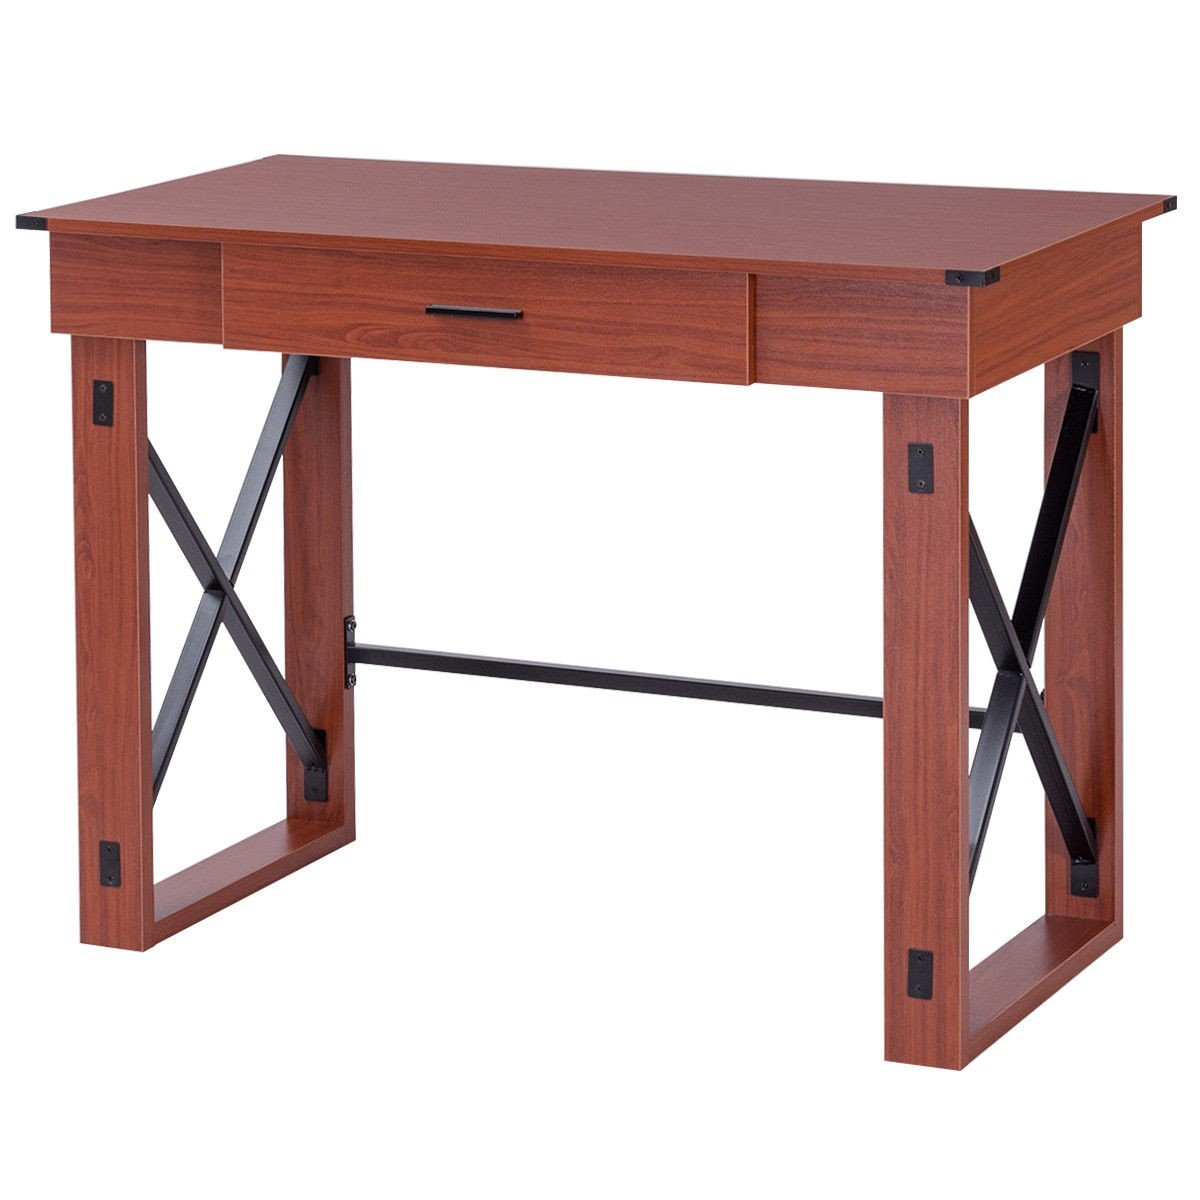 MD Group Home Writing Study Lift Top Computer Desk